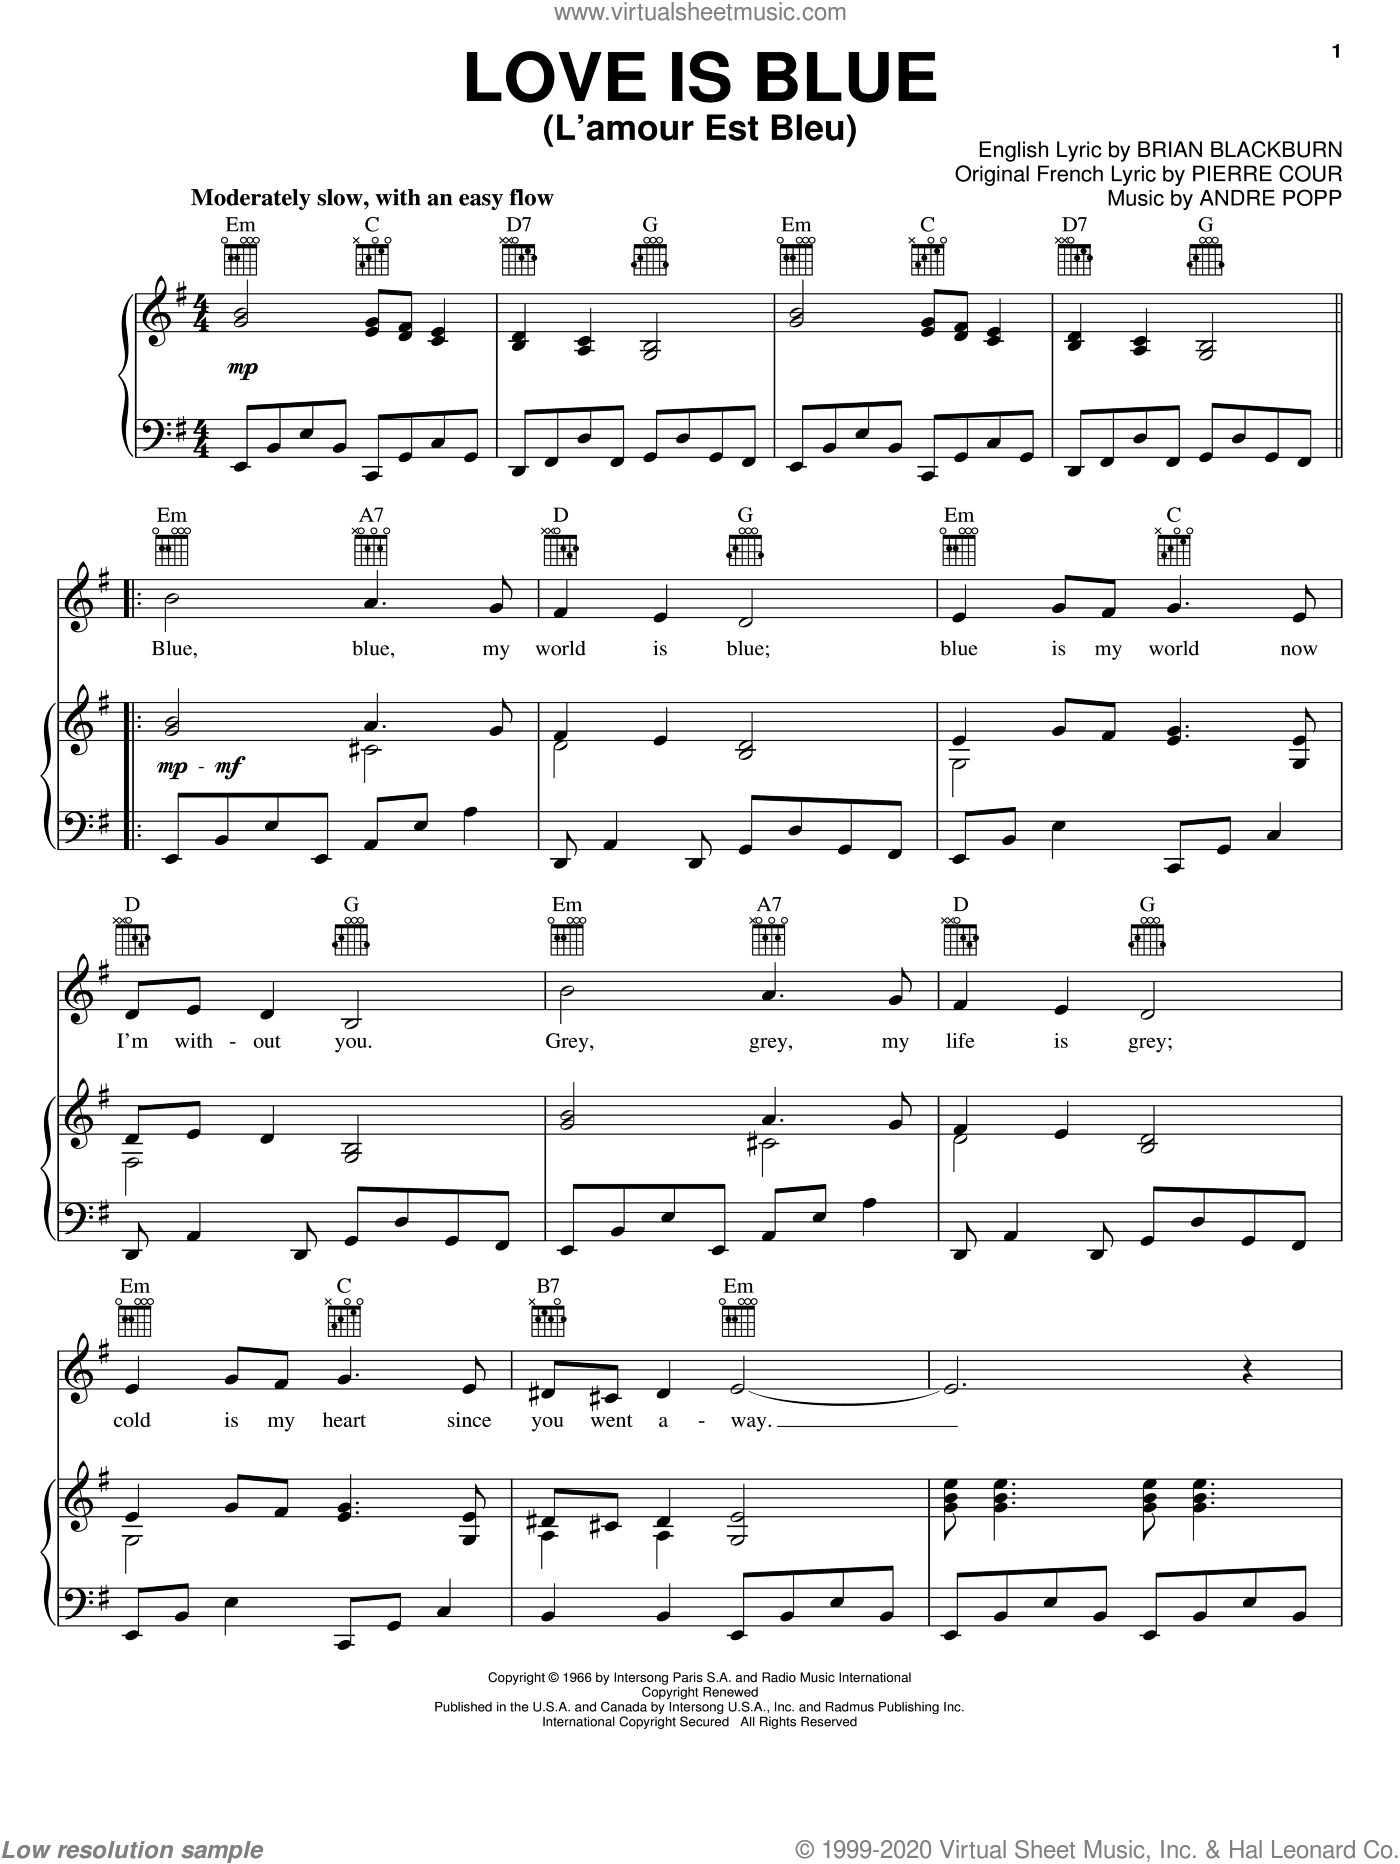 Love Is Blue (L'amour Est Bleu) sheet music for voice, piano or guitar by Robert Goulet, Andre Popp, Brian Blackburn and Pierre Cour, intermediate skill level